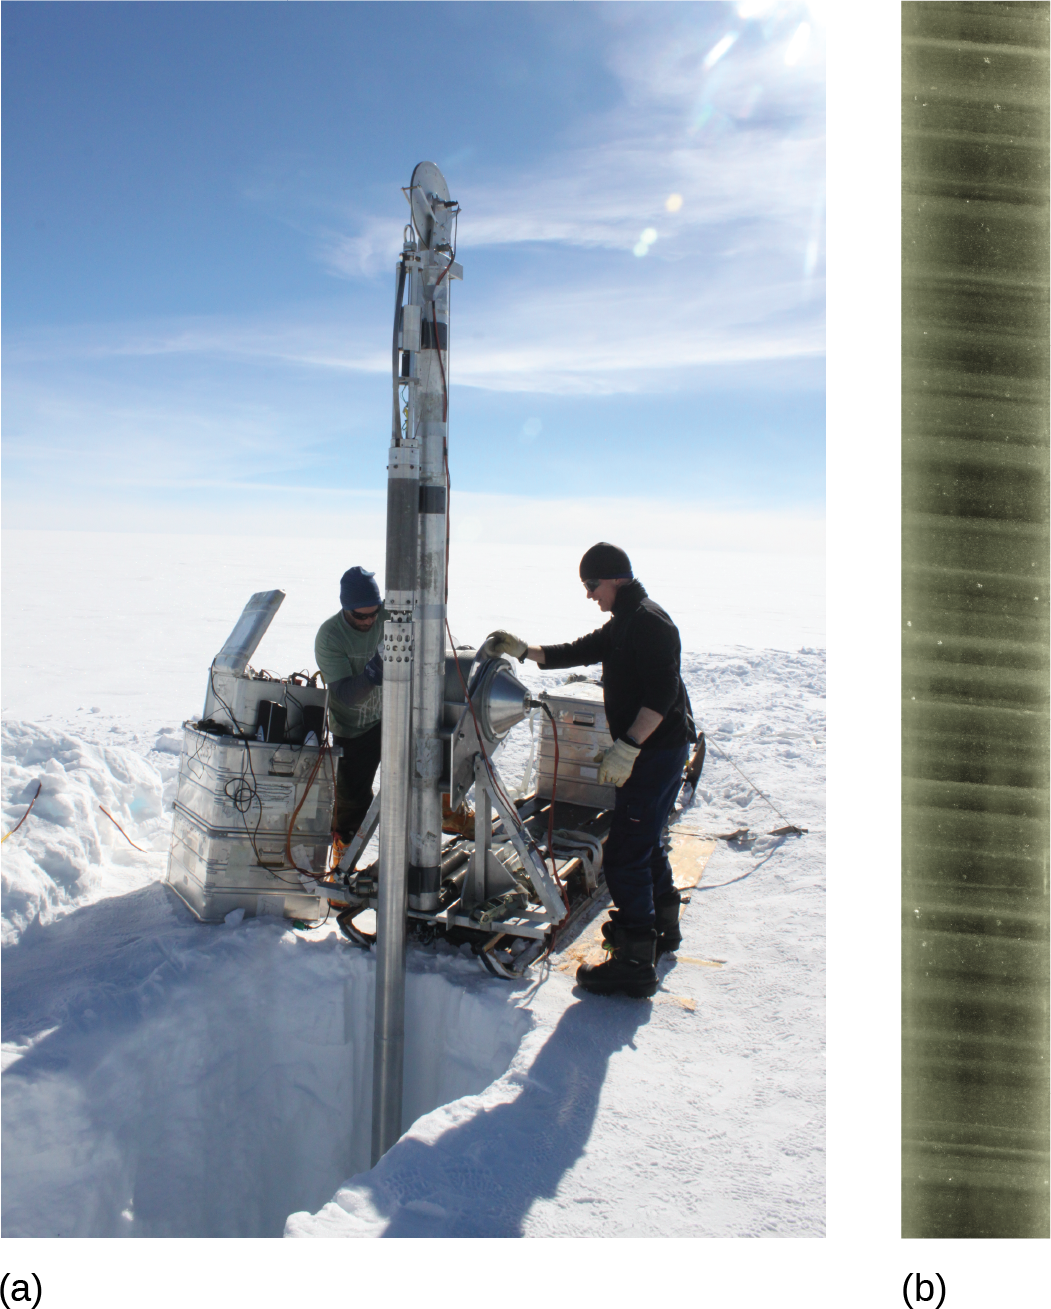 In the first image, a group of scientists uses a drill to extract an ice core in a polar environment. In the second, an ice core is displayed, showing air bubbles trapped within.